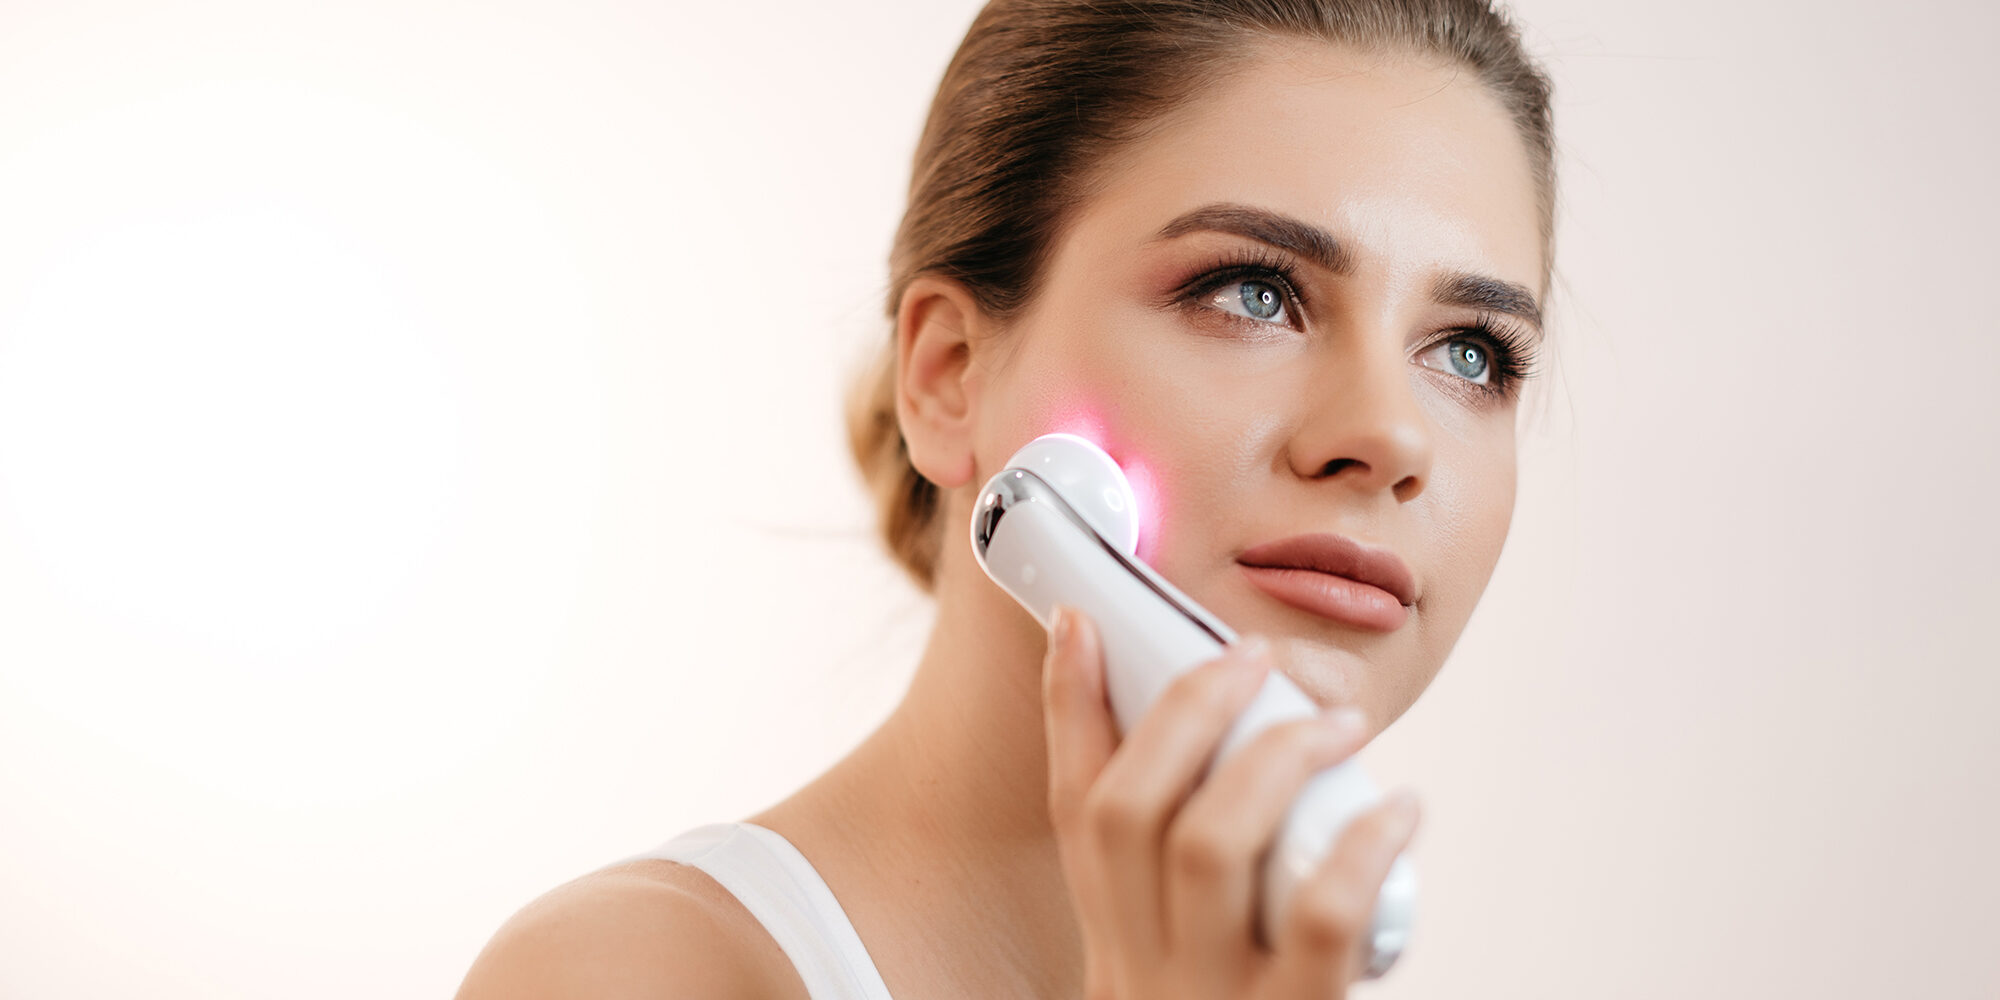 From SPACS To E-Commerce, Where Beauty Consumer And Investor Money Will Flow This Year